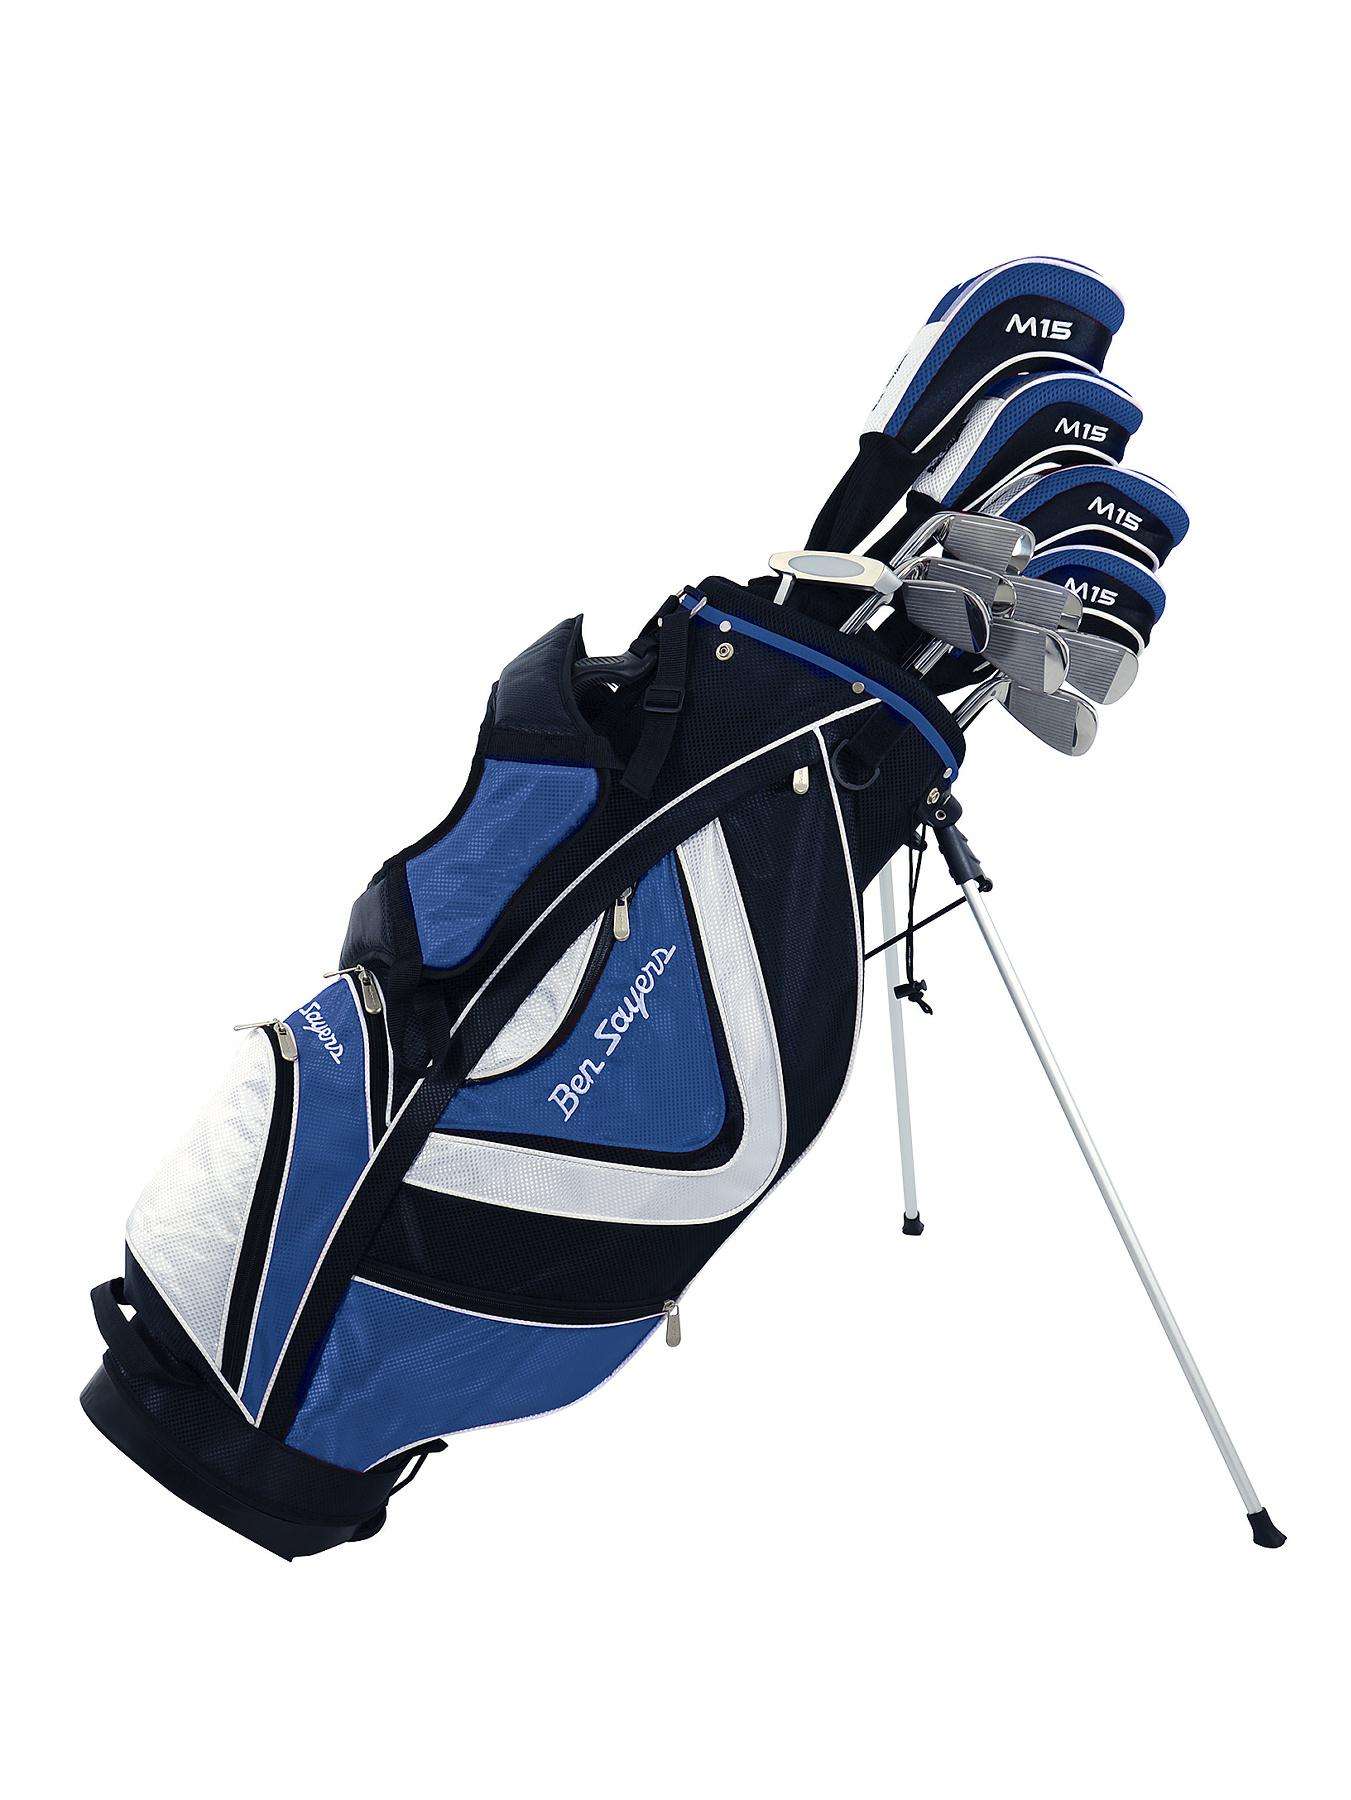 Ben Sayers M15 Golf Package Set with Stand Bag - Long